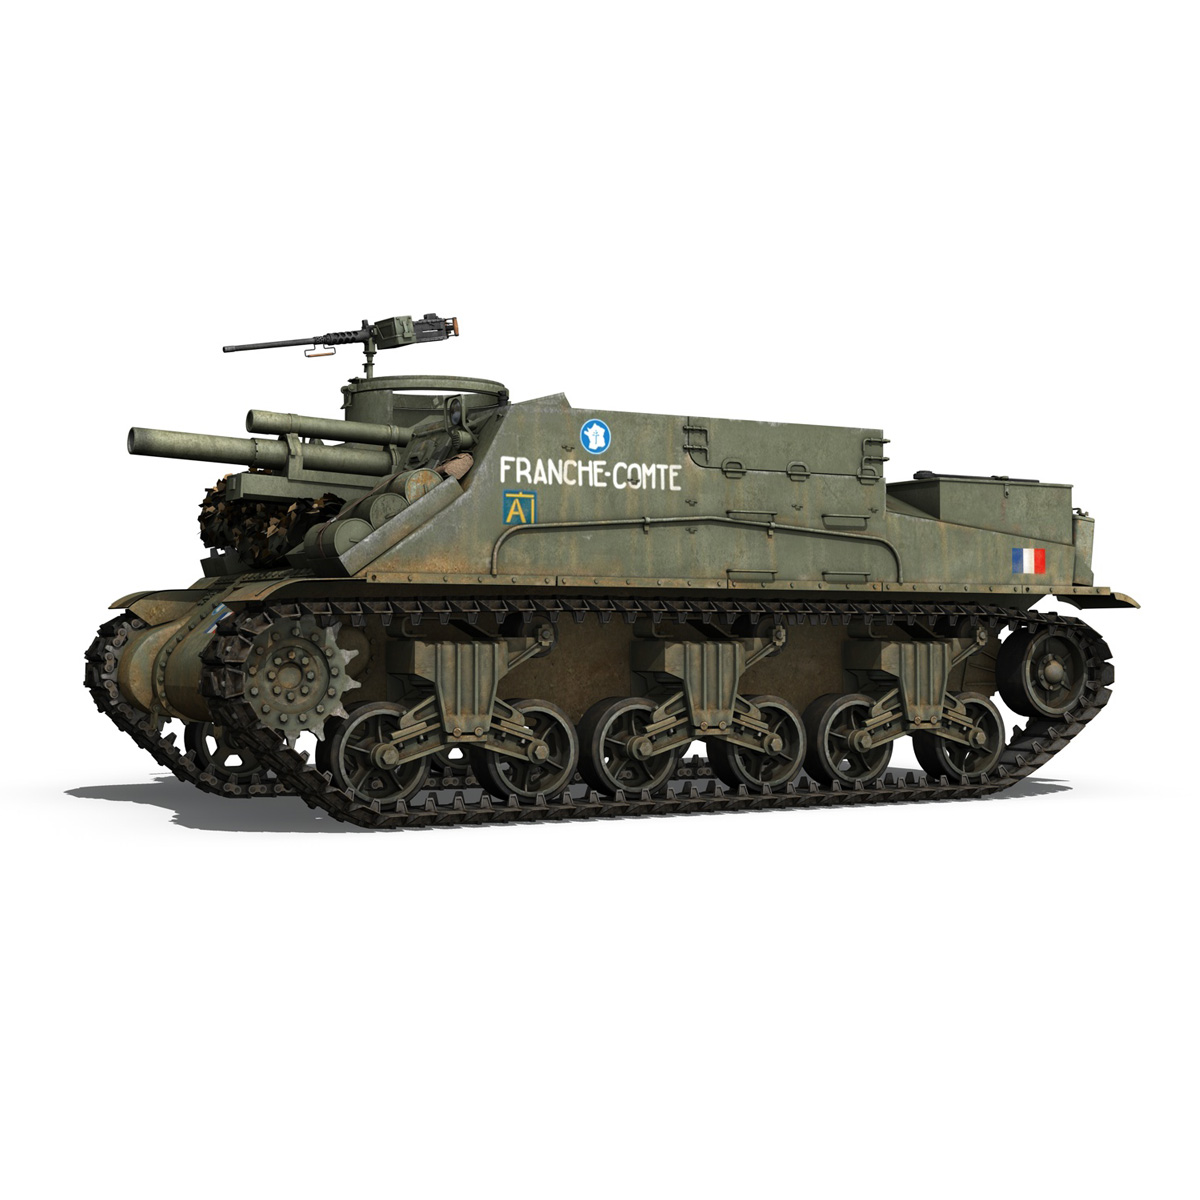 M7 Priest - Franche-Comte 3d model  265859